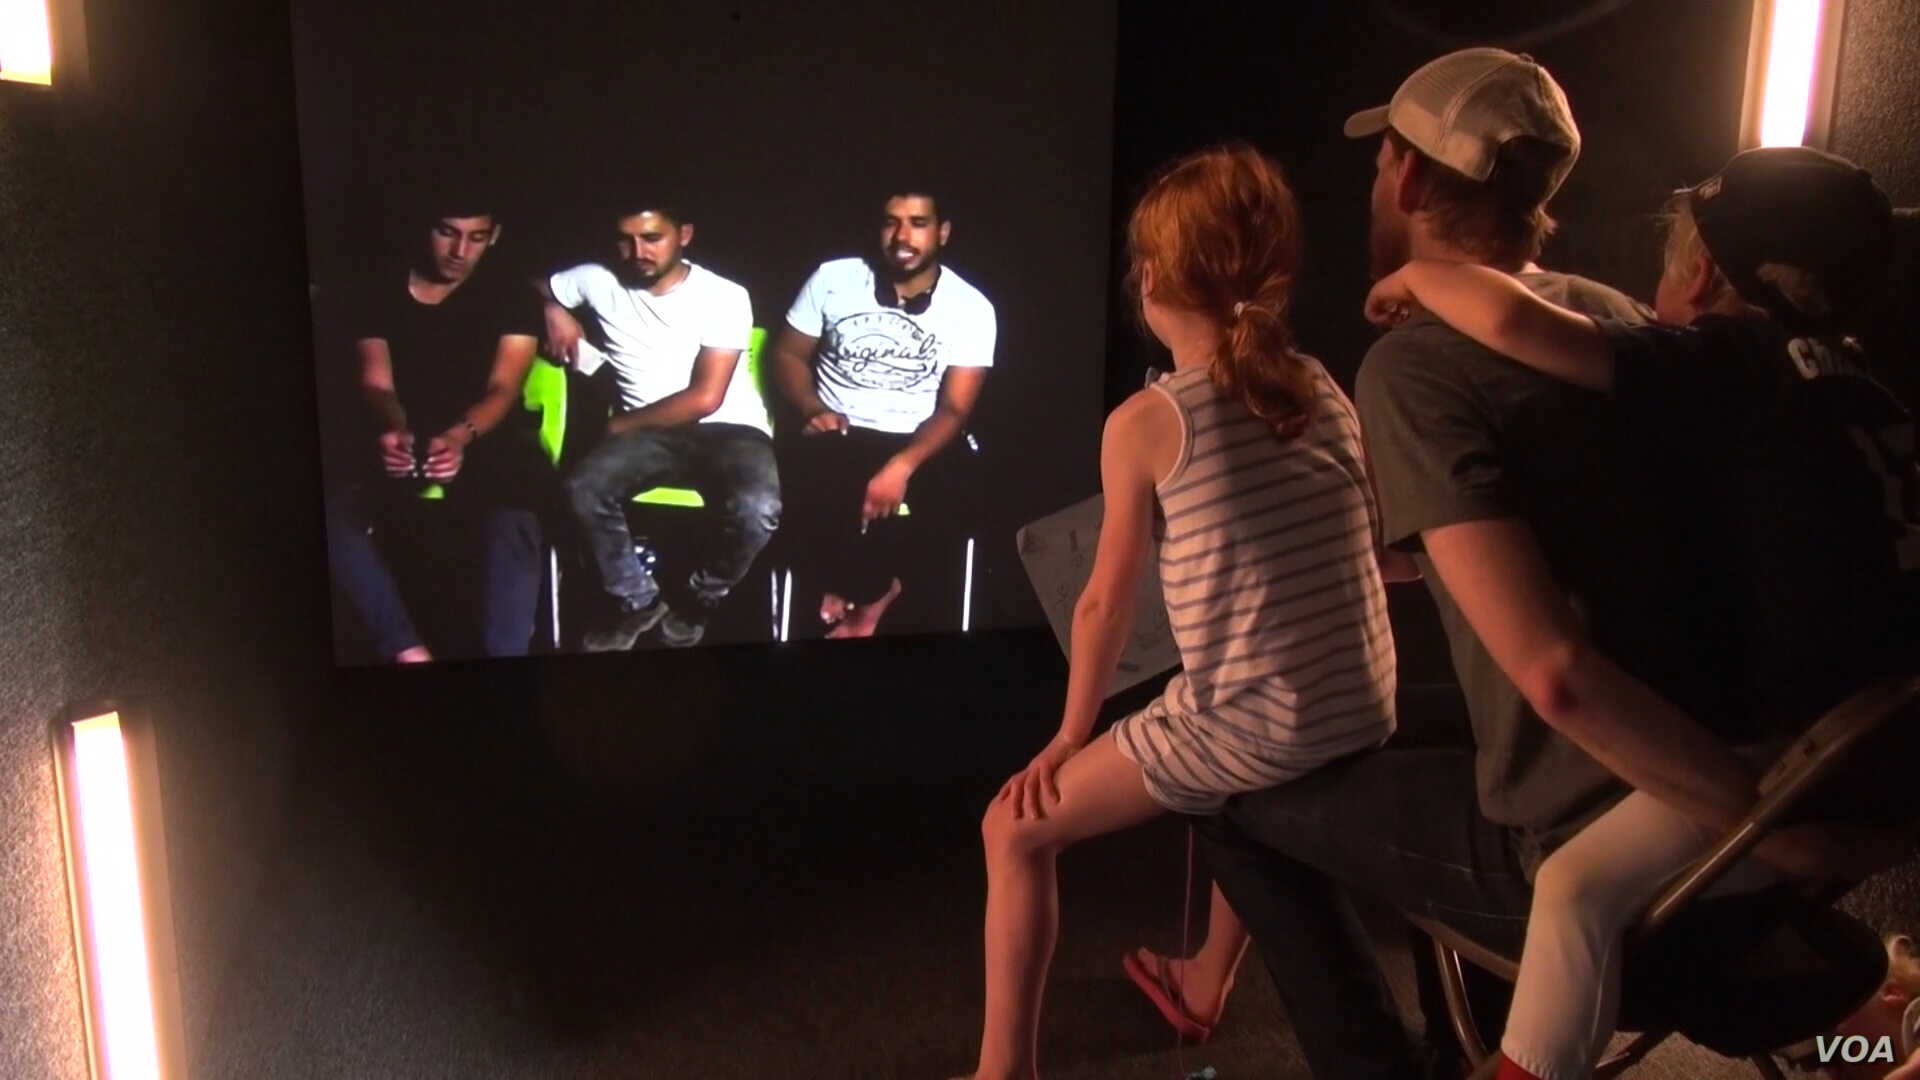 Iraqi refugees living at a refugee camp and festival attendees in Washington interact directly through a digital portal called Shared Studio, which was set up at the One Journey festival in last June.